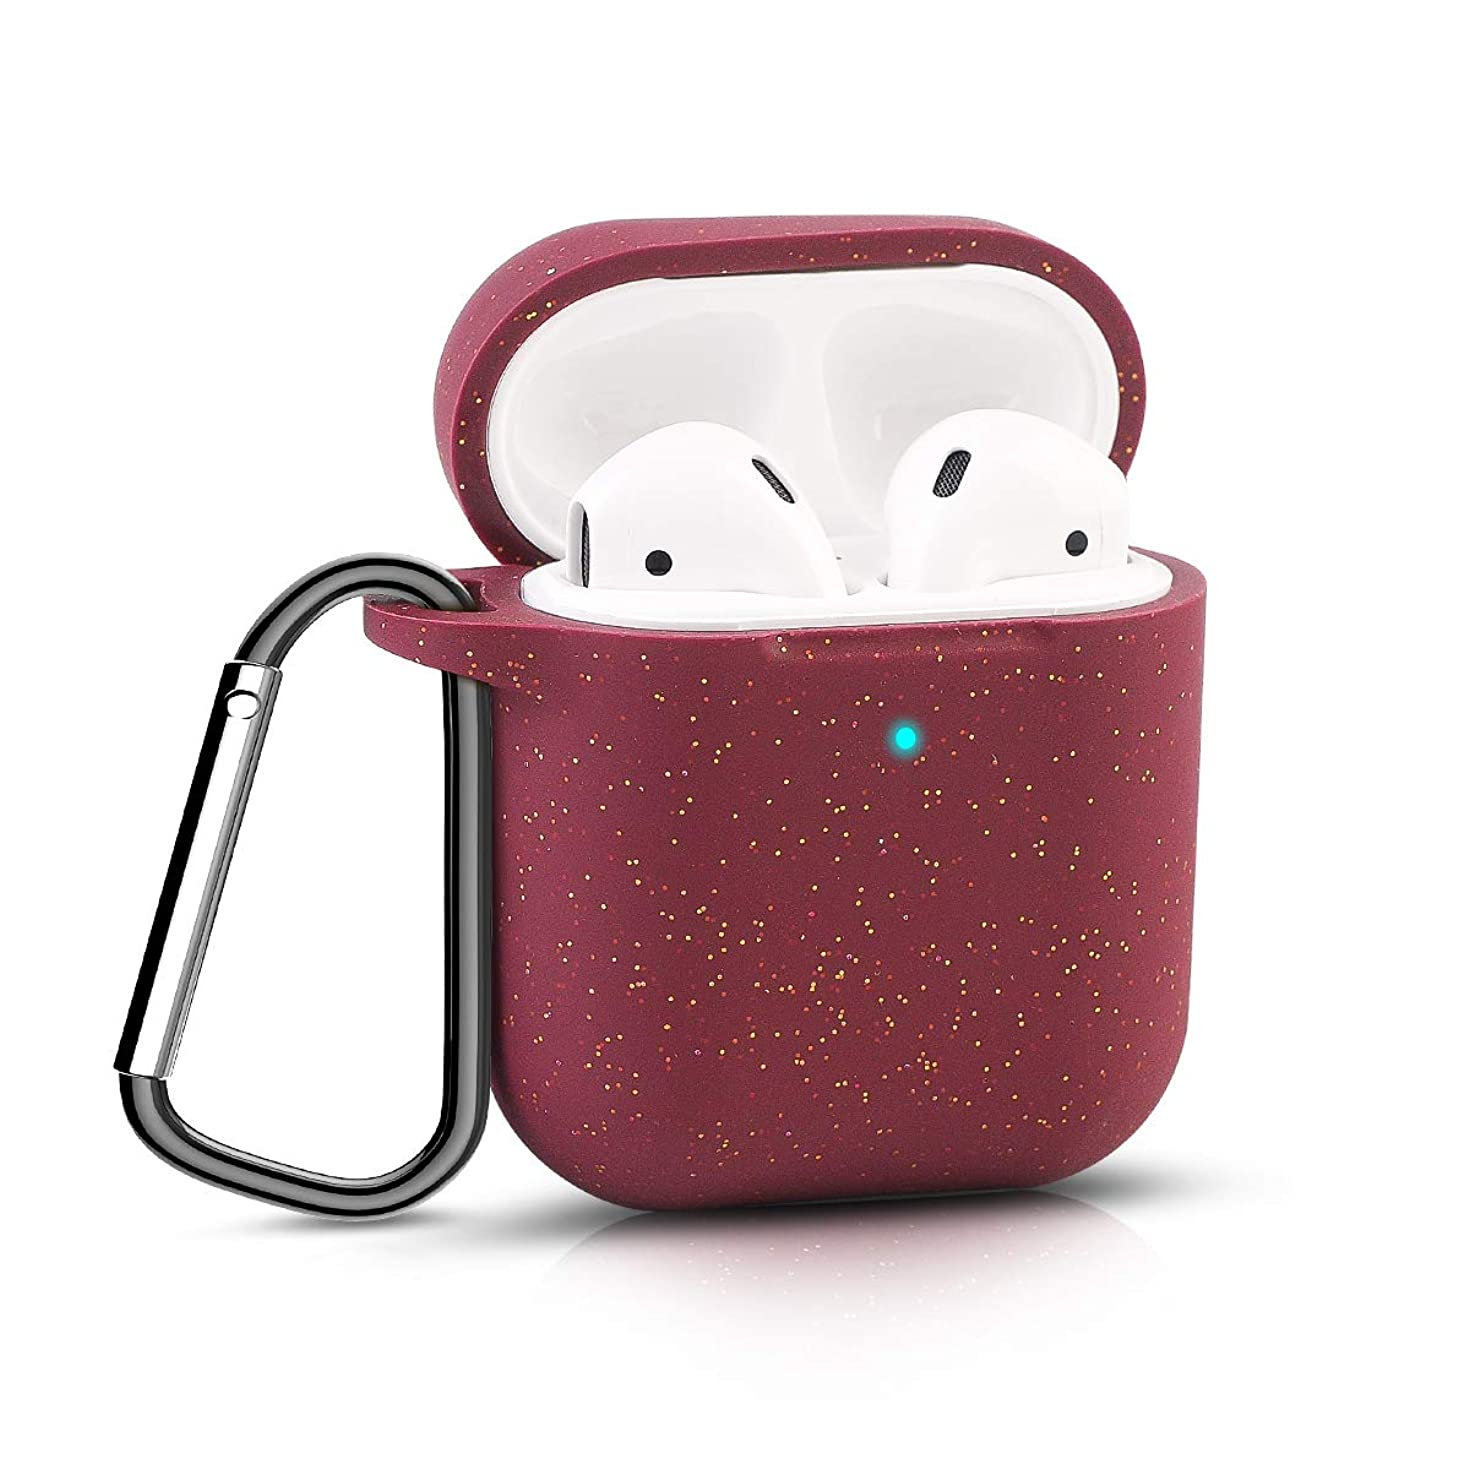 Bqmte Silicone Case Compatible for AirPods 2, [Front LED Visible] Glittery Wireless Charging Case Cover with Carabiner for Apple AirPods 2 (2019) (Glittery Burgundy)